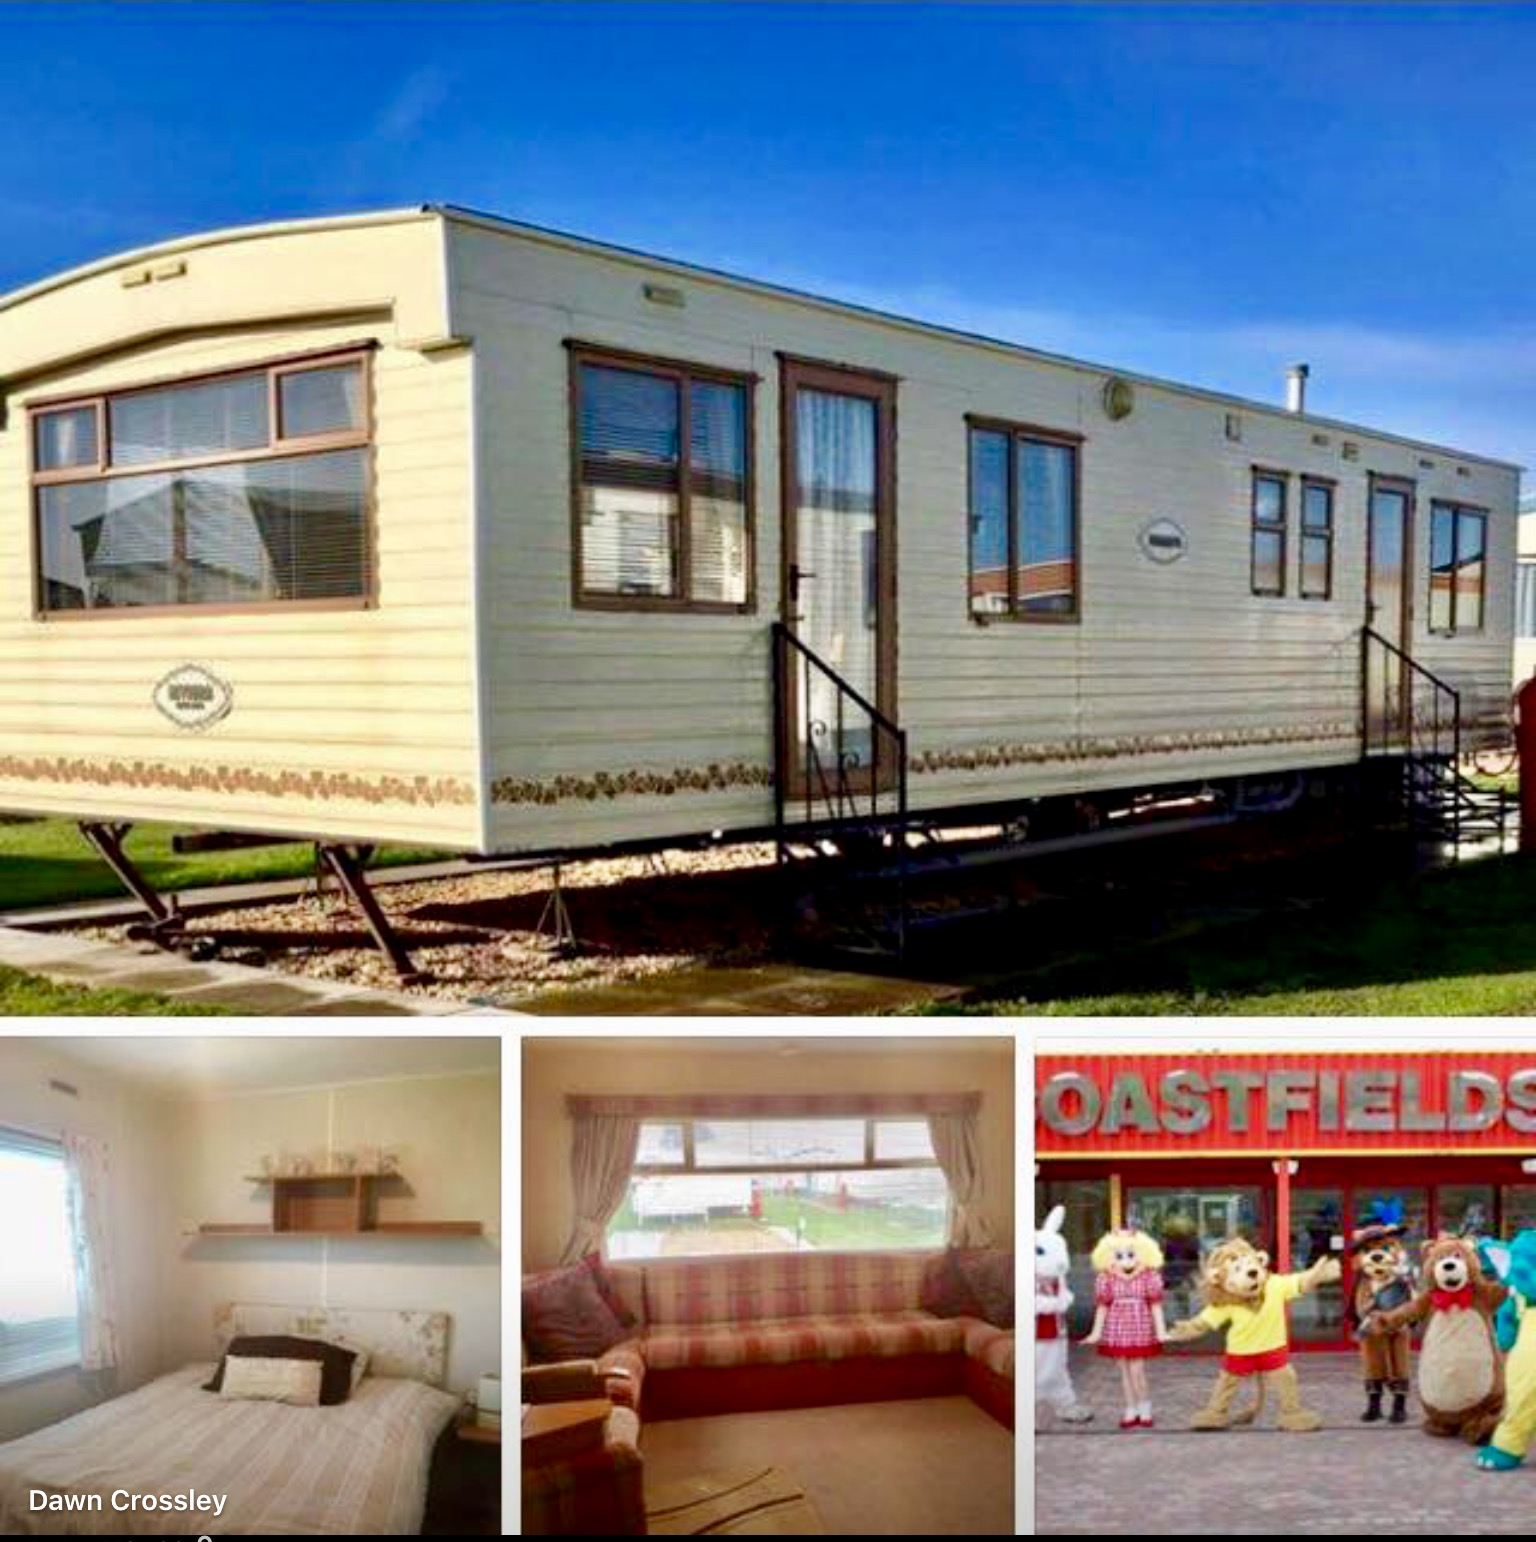 *125*  Coastfields Holiday Village, Ingoldmells, Lincolnshire